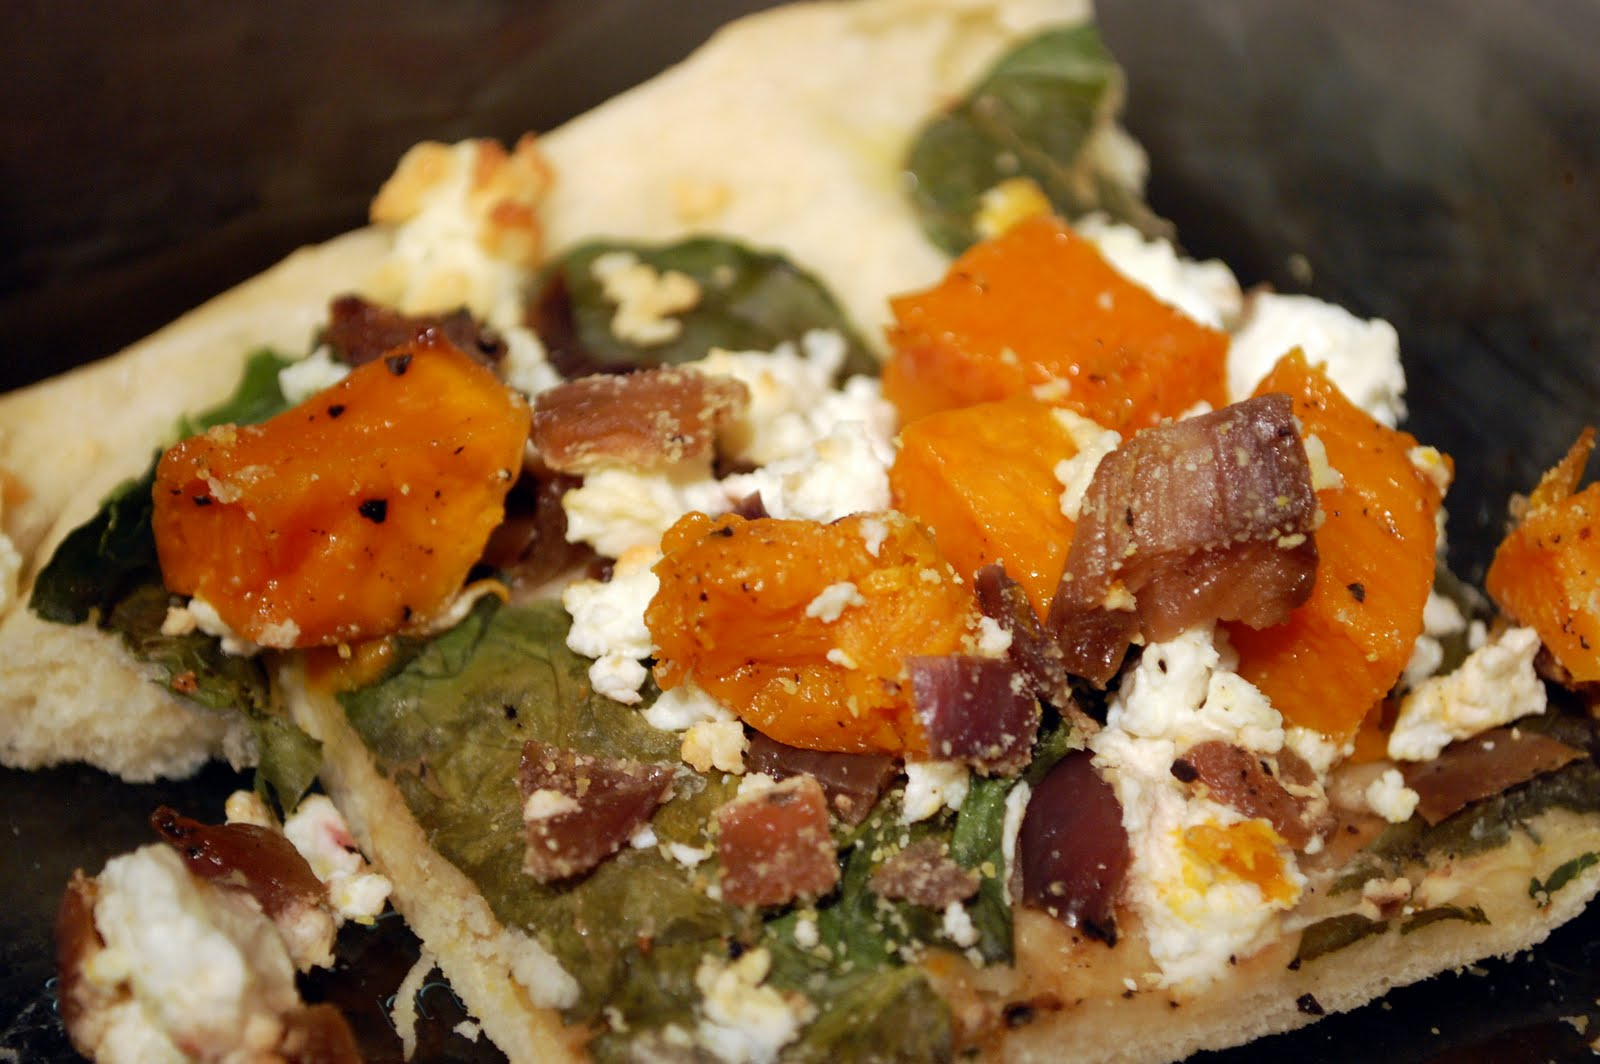 The Skillet Takes: Butternut Squash, Spinach, and Goat Cheese Pizza